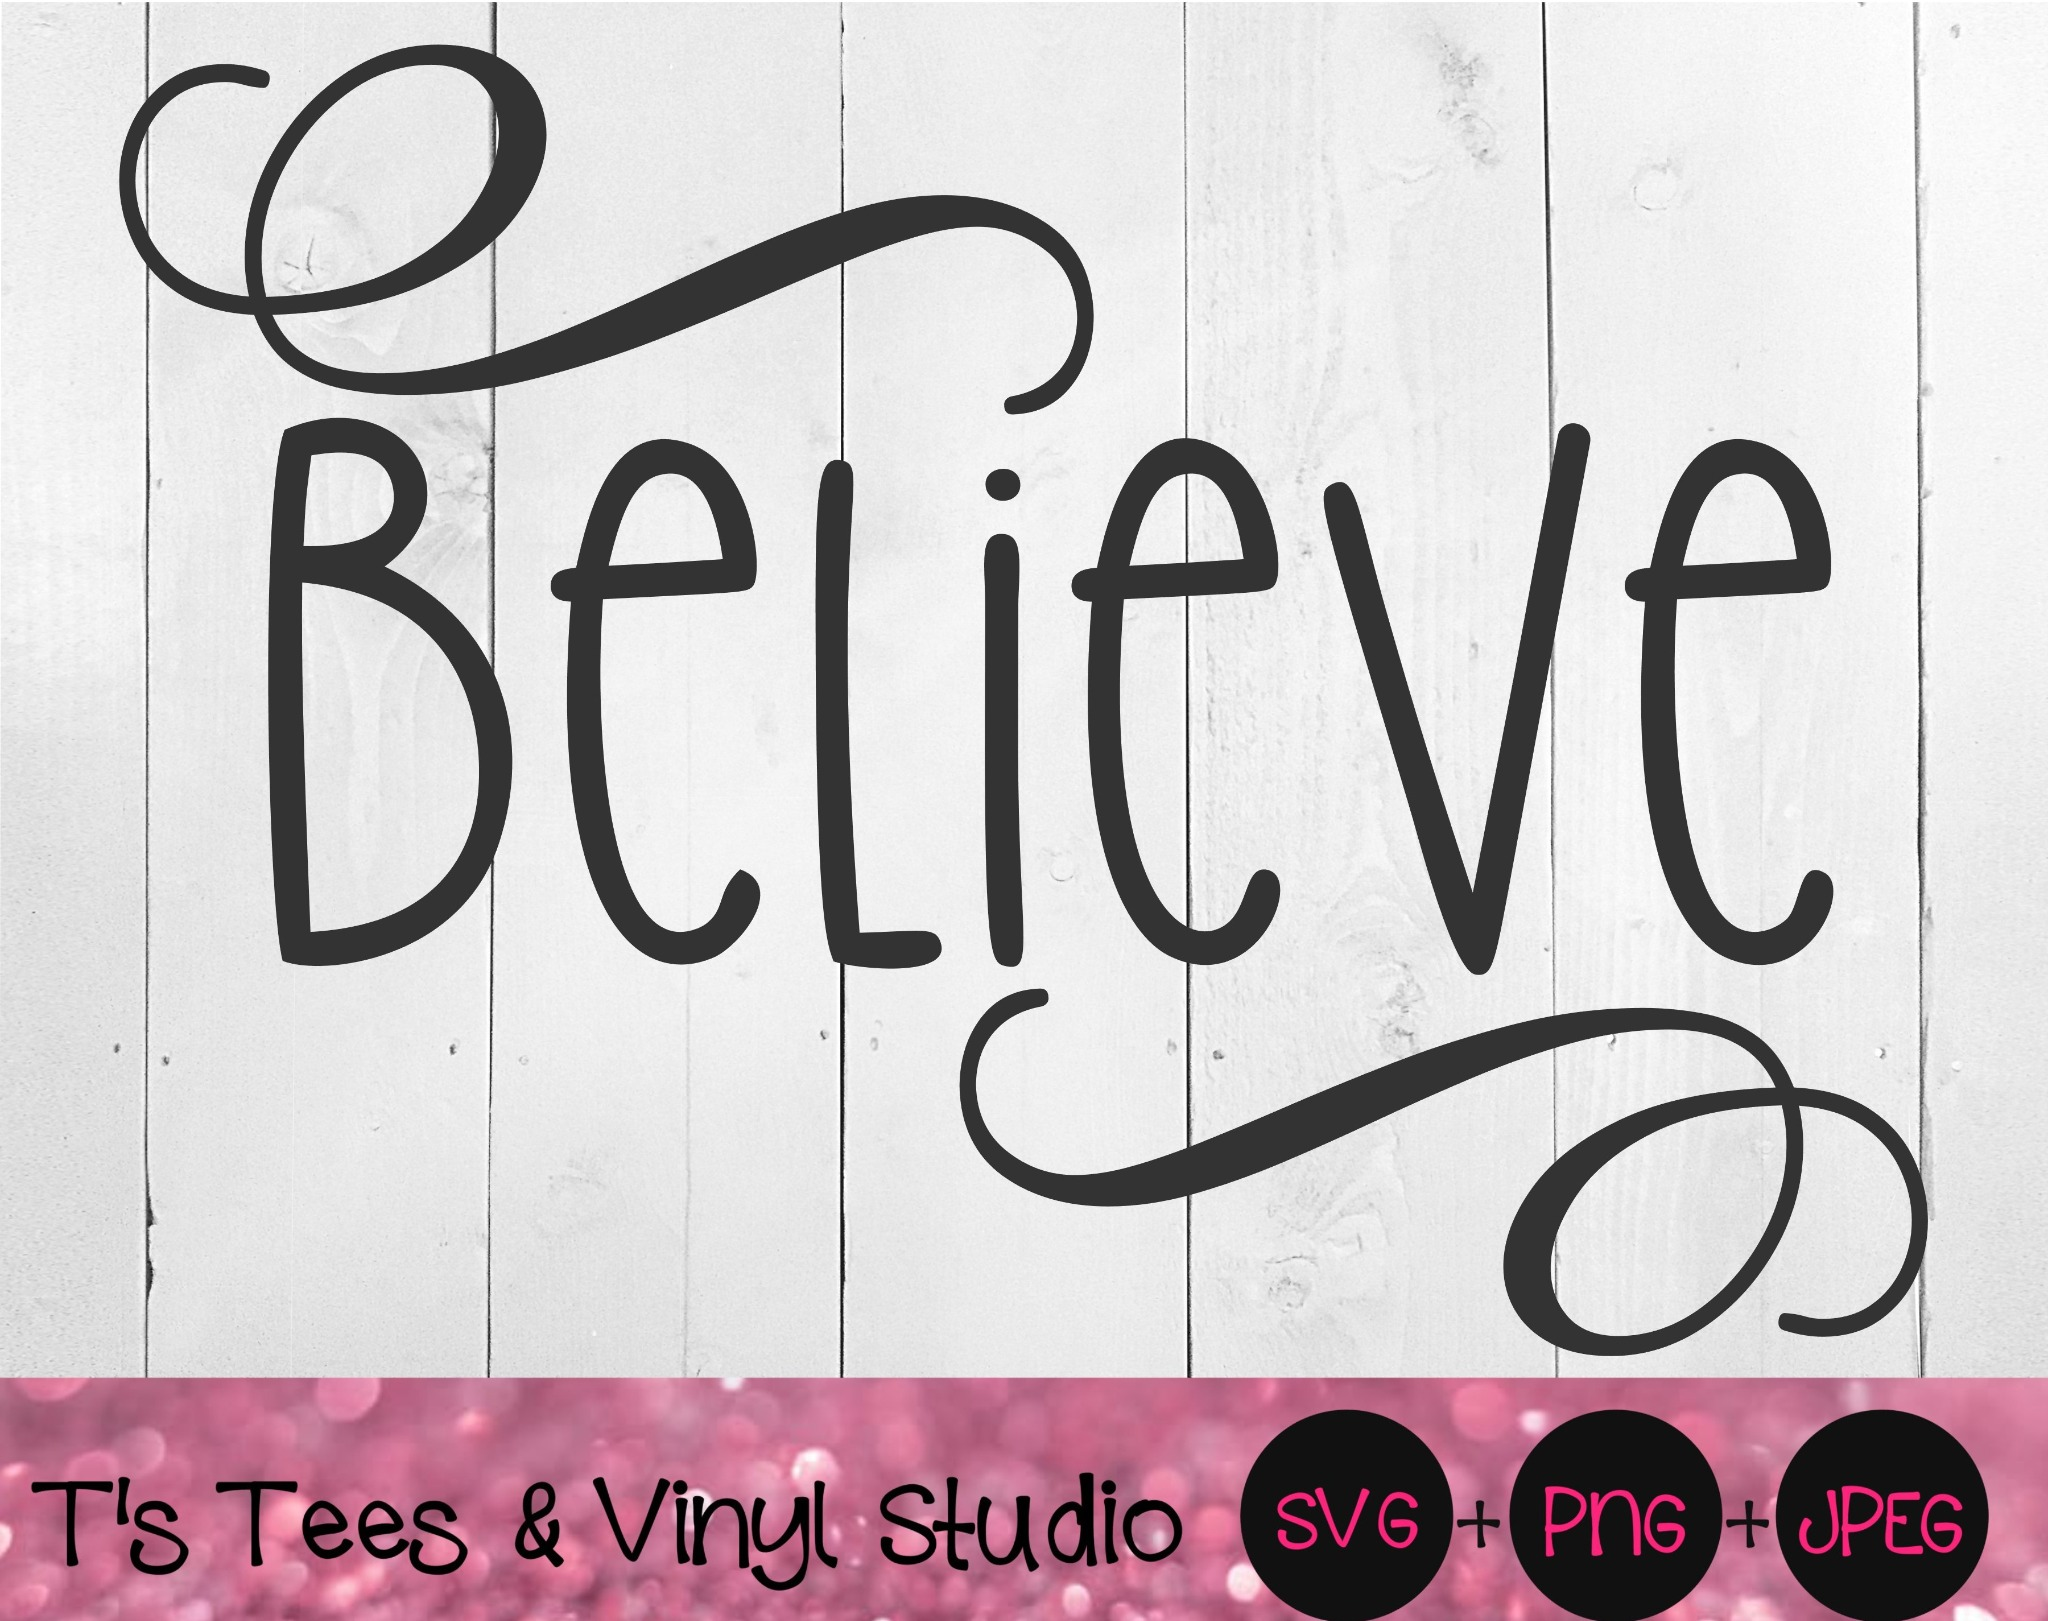 Believe Svg, Christmas Cut File, Merry Christmas, Holiday Cheer, Christmastime, Digital Download, Ch